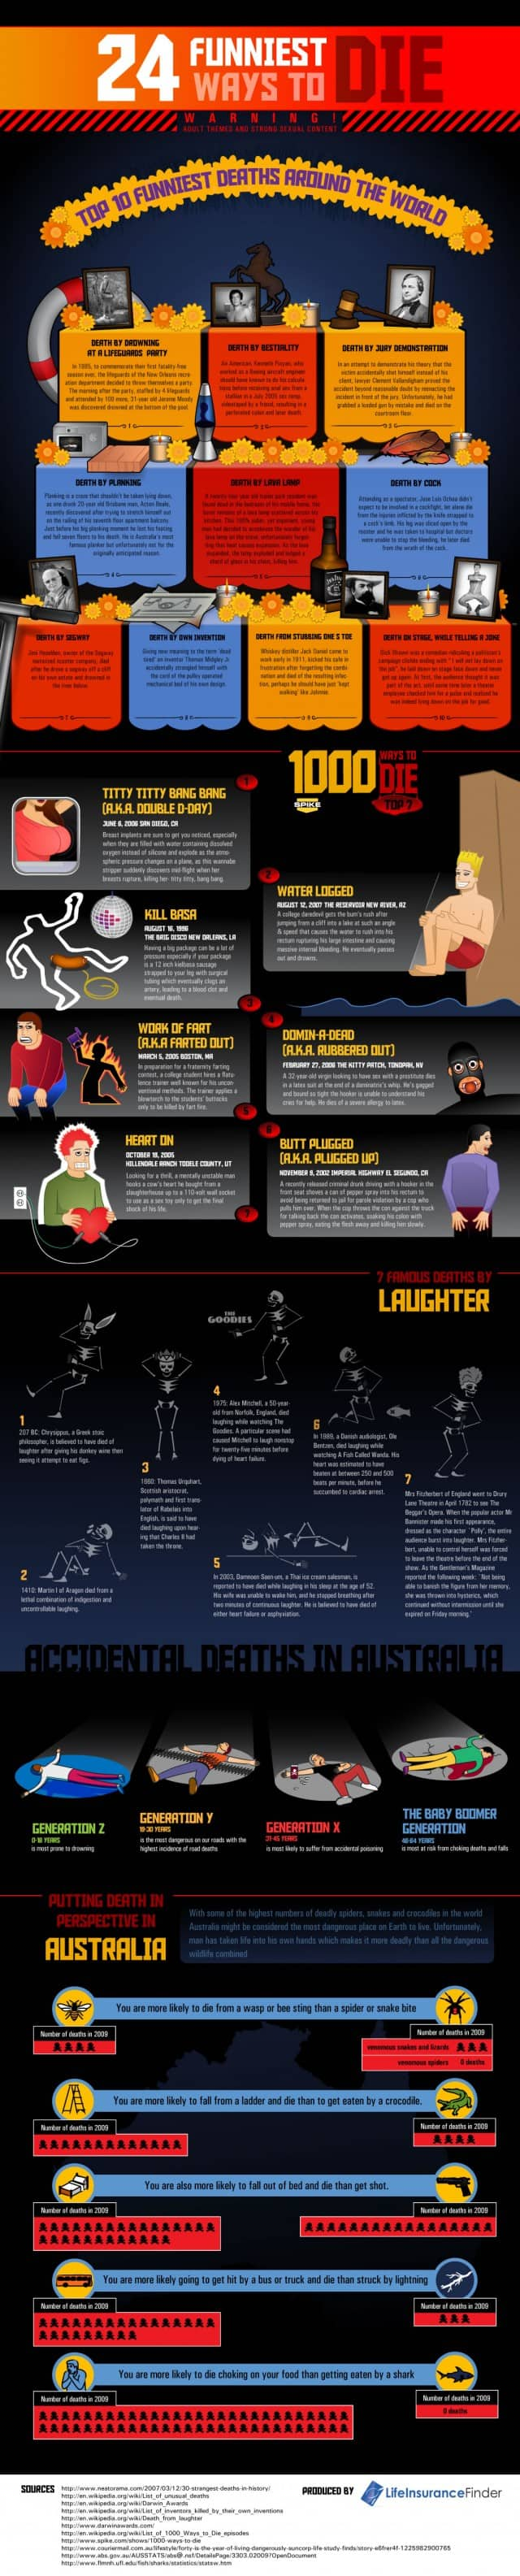 Funniest-deaths-Infographic-e1327186748526